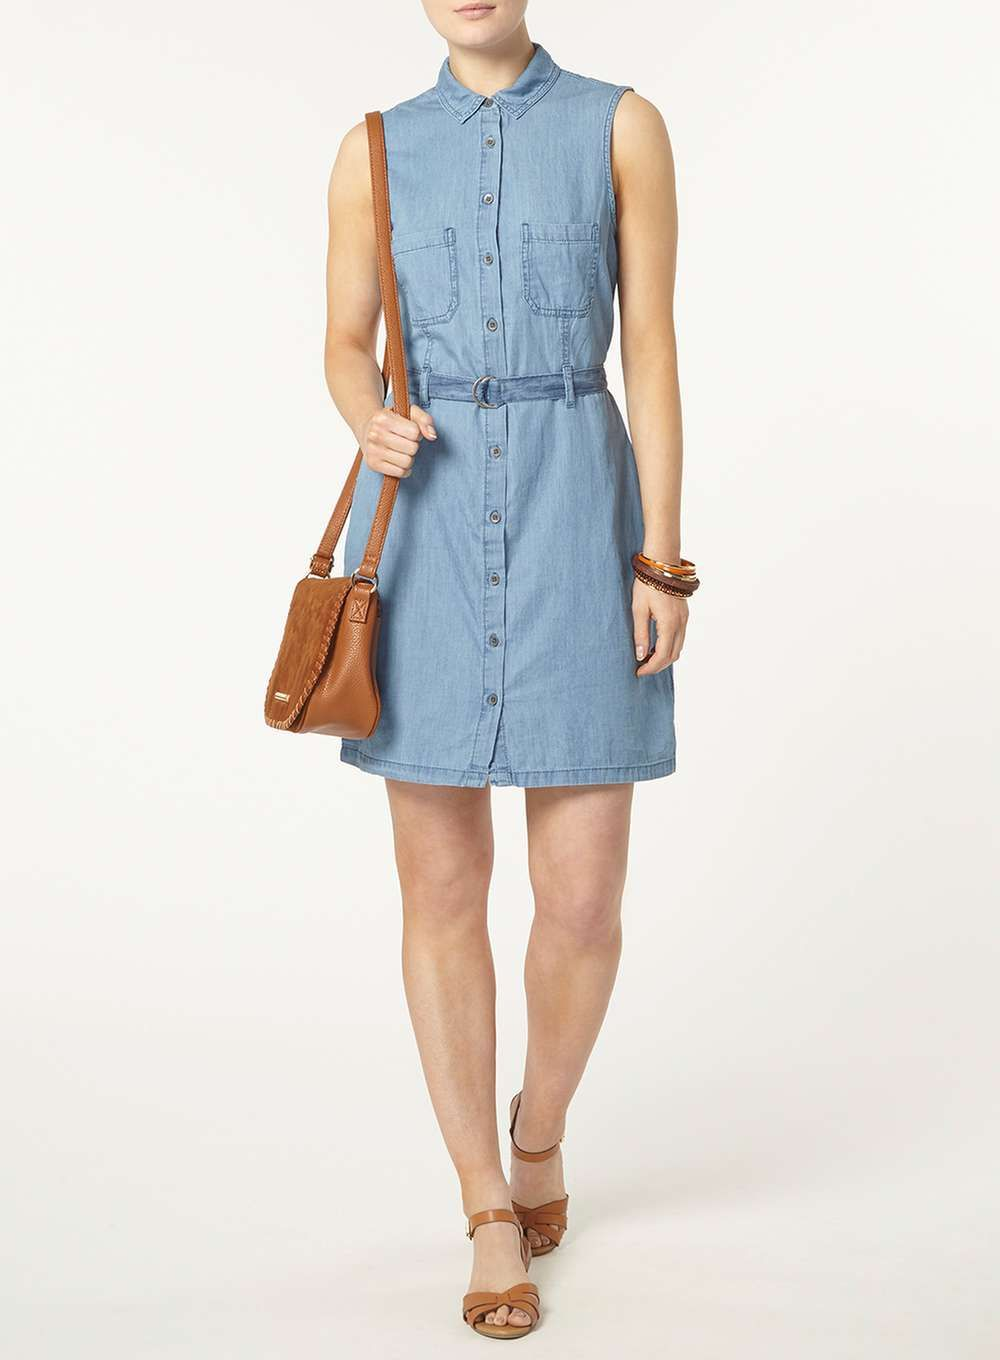 Indigo Sporty Shirt Dress - Dorothy Perkins